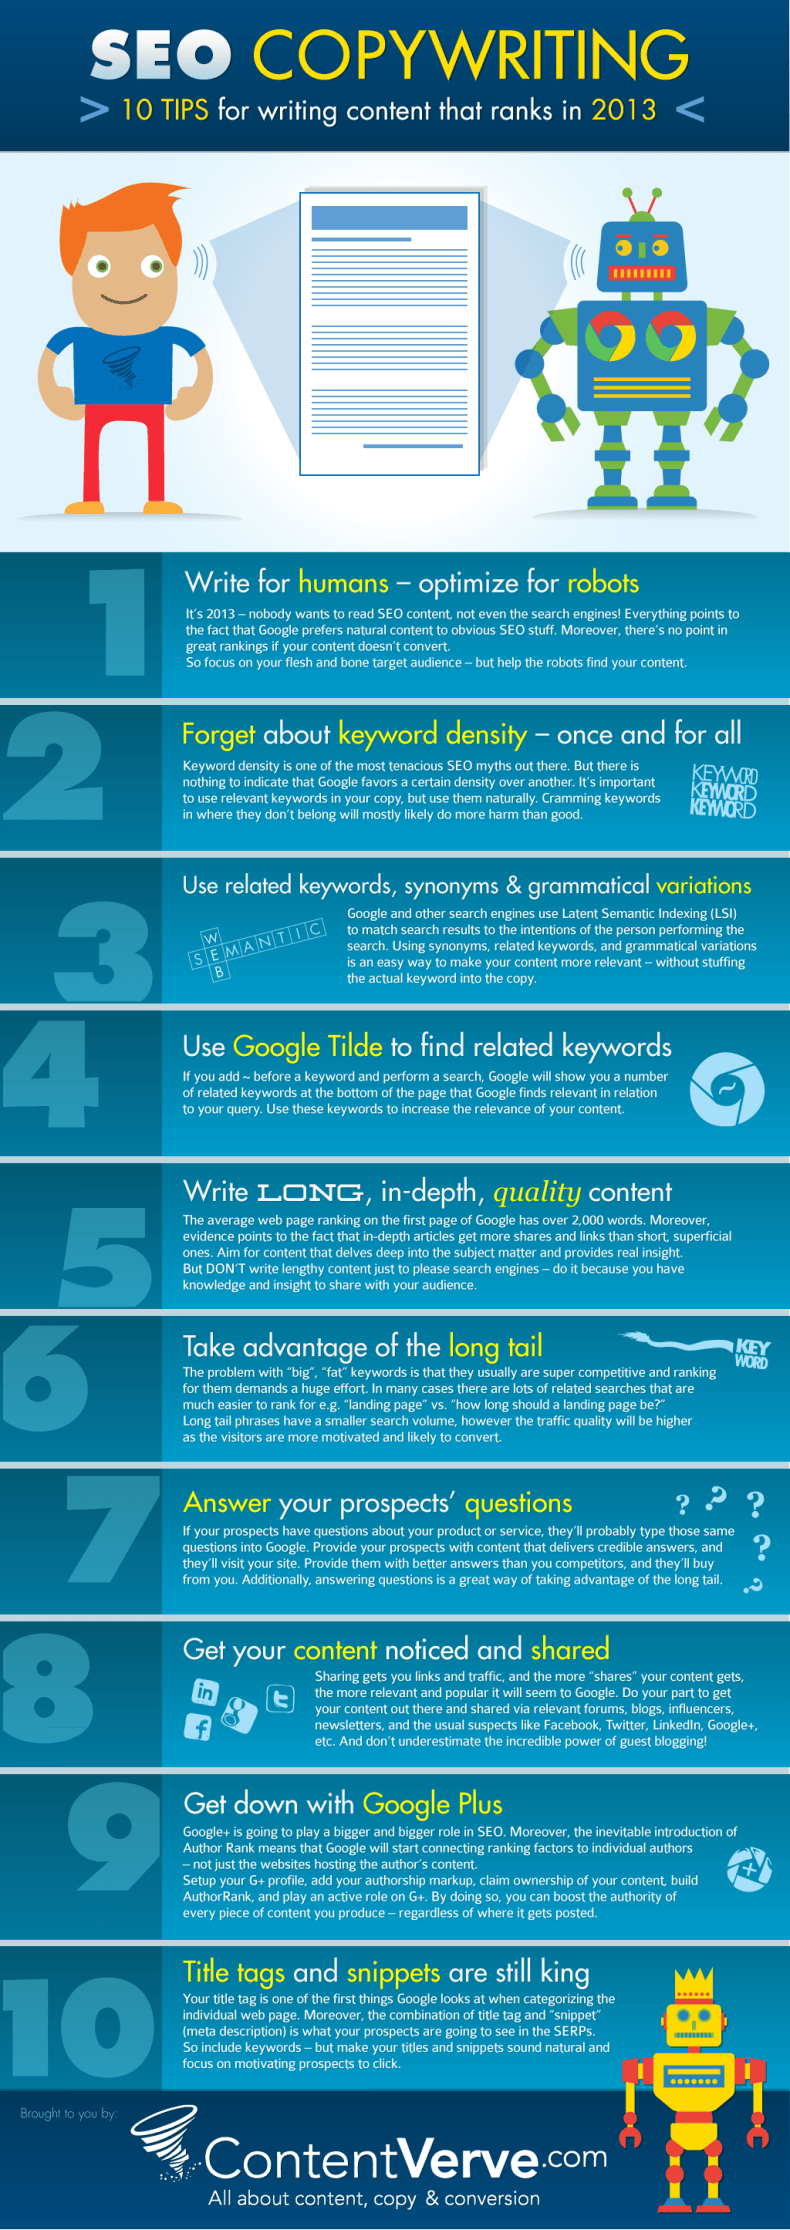 SEO-Copywriting-–-10-tips-for-writing-content-that-ranks-in-2013